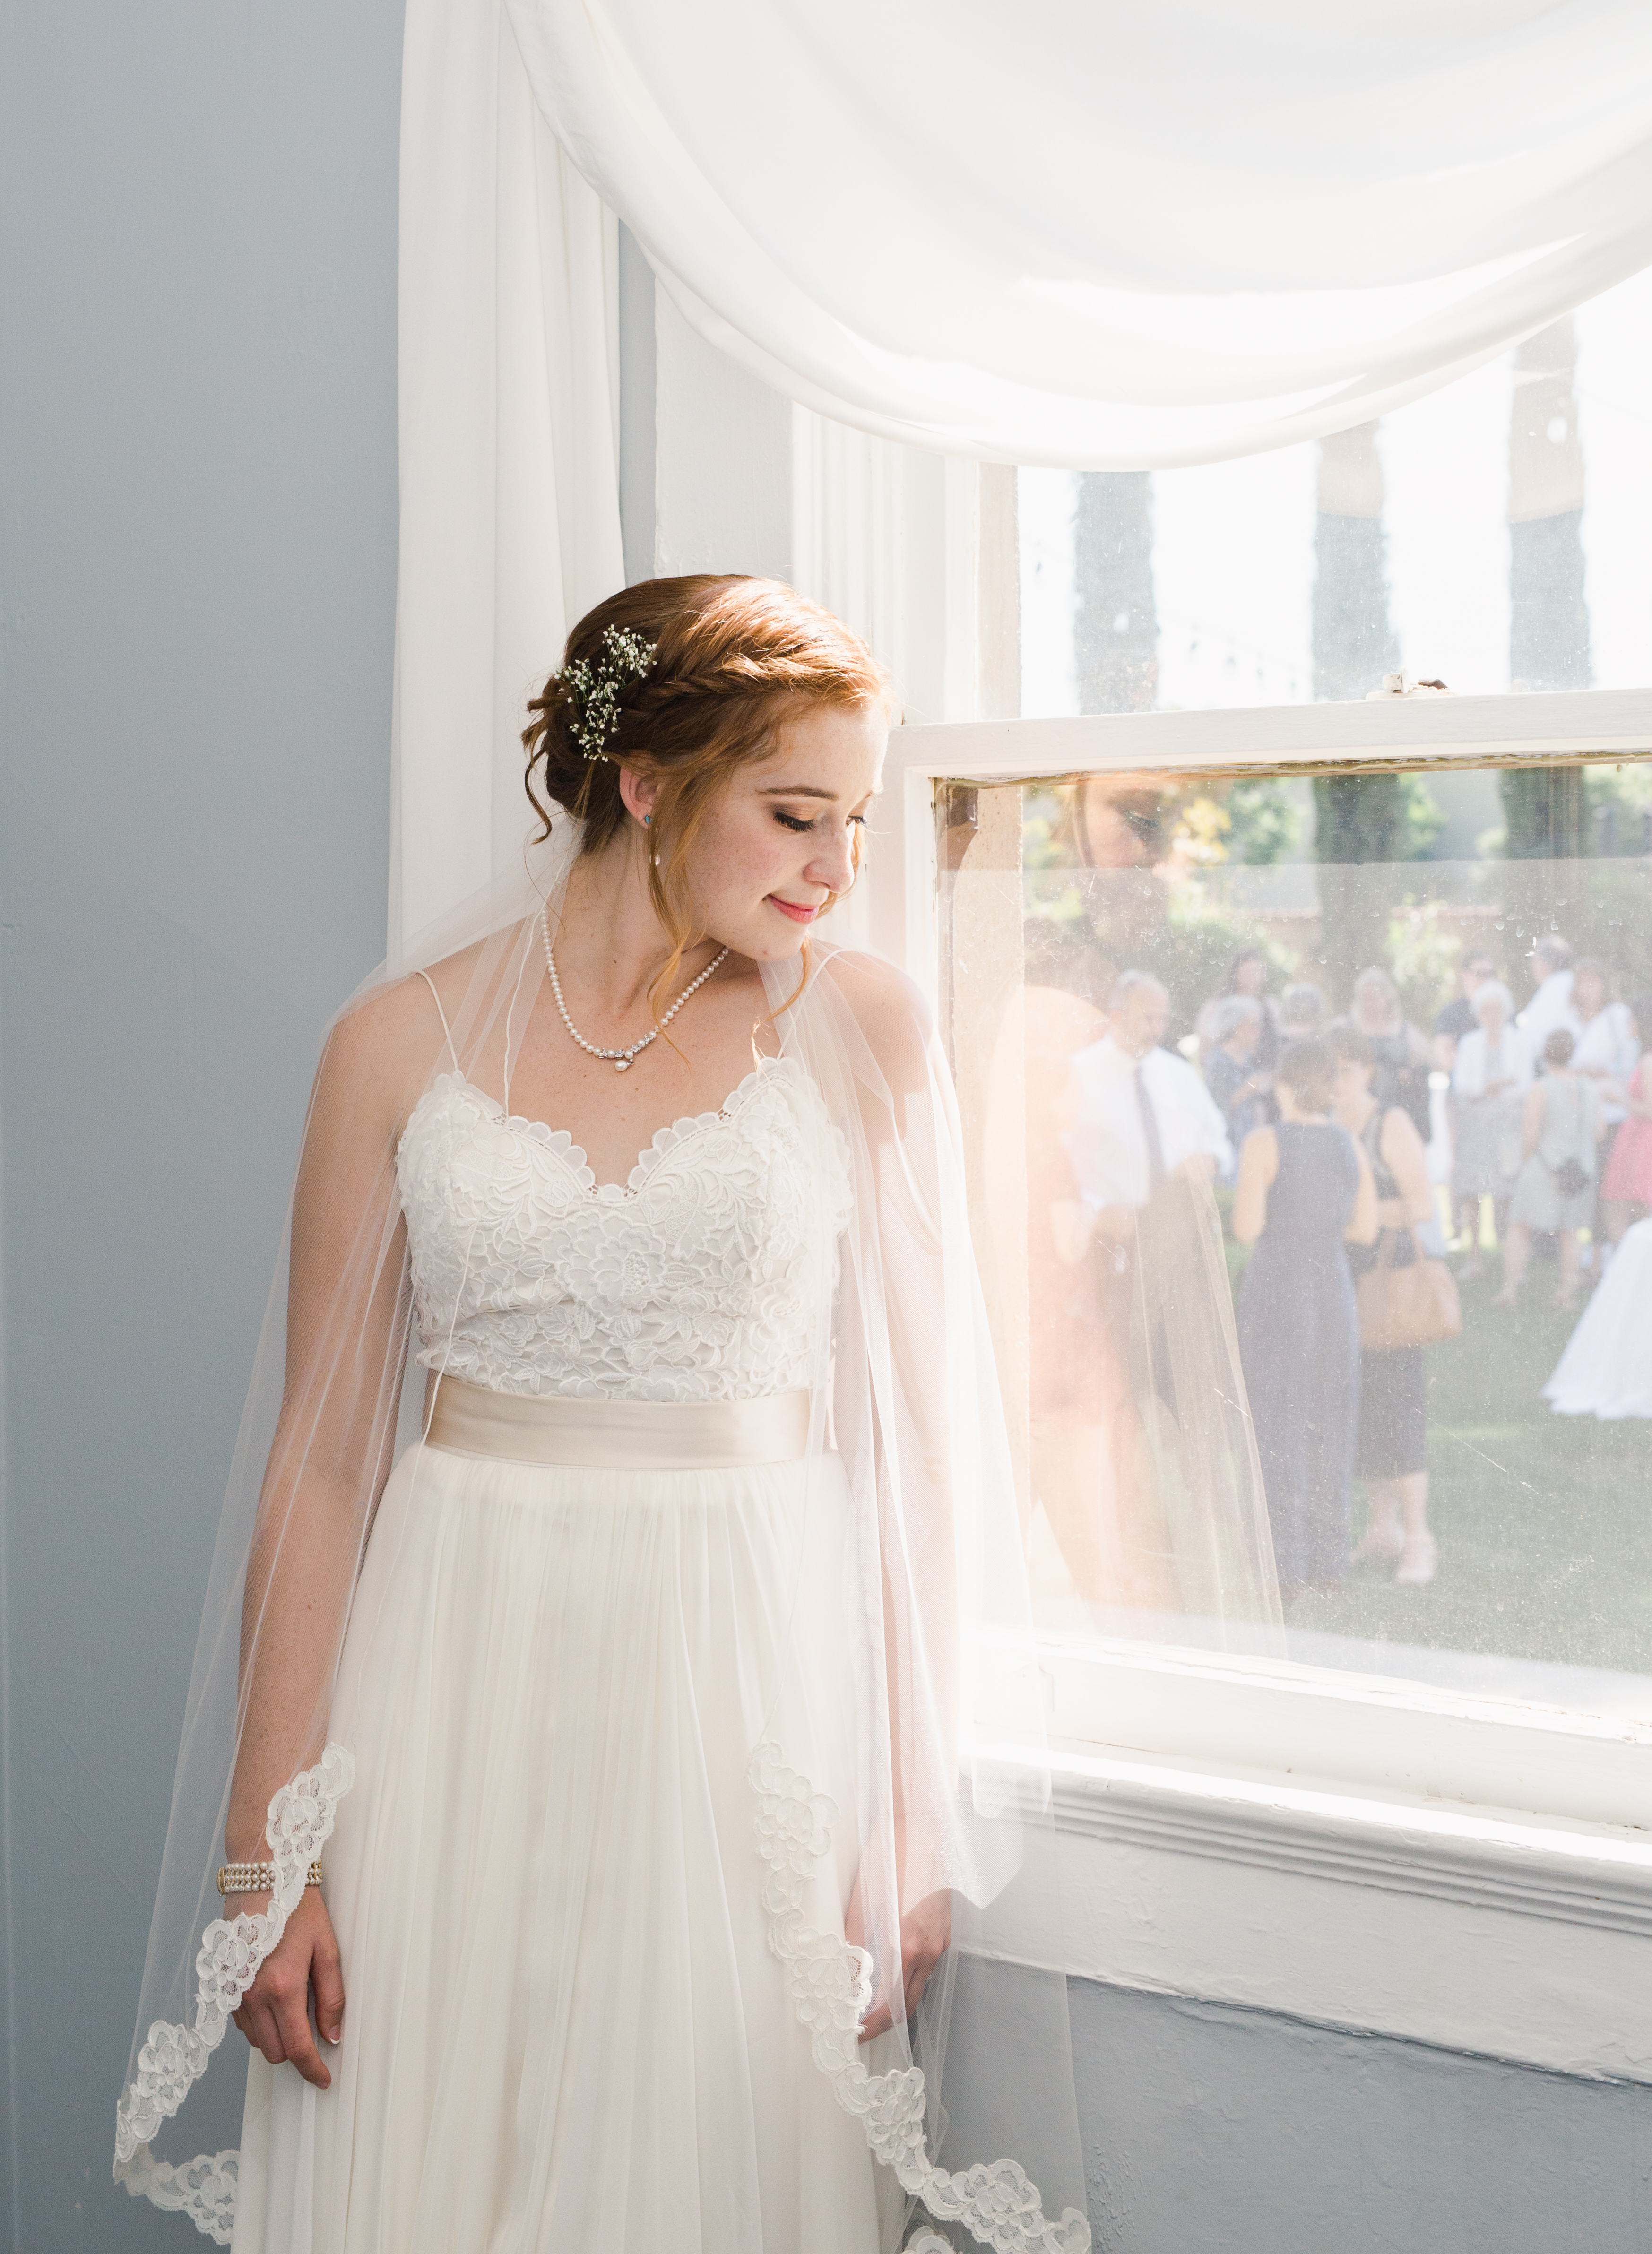 Grimes Bride and Groom Alone-18